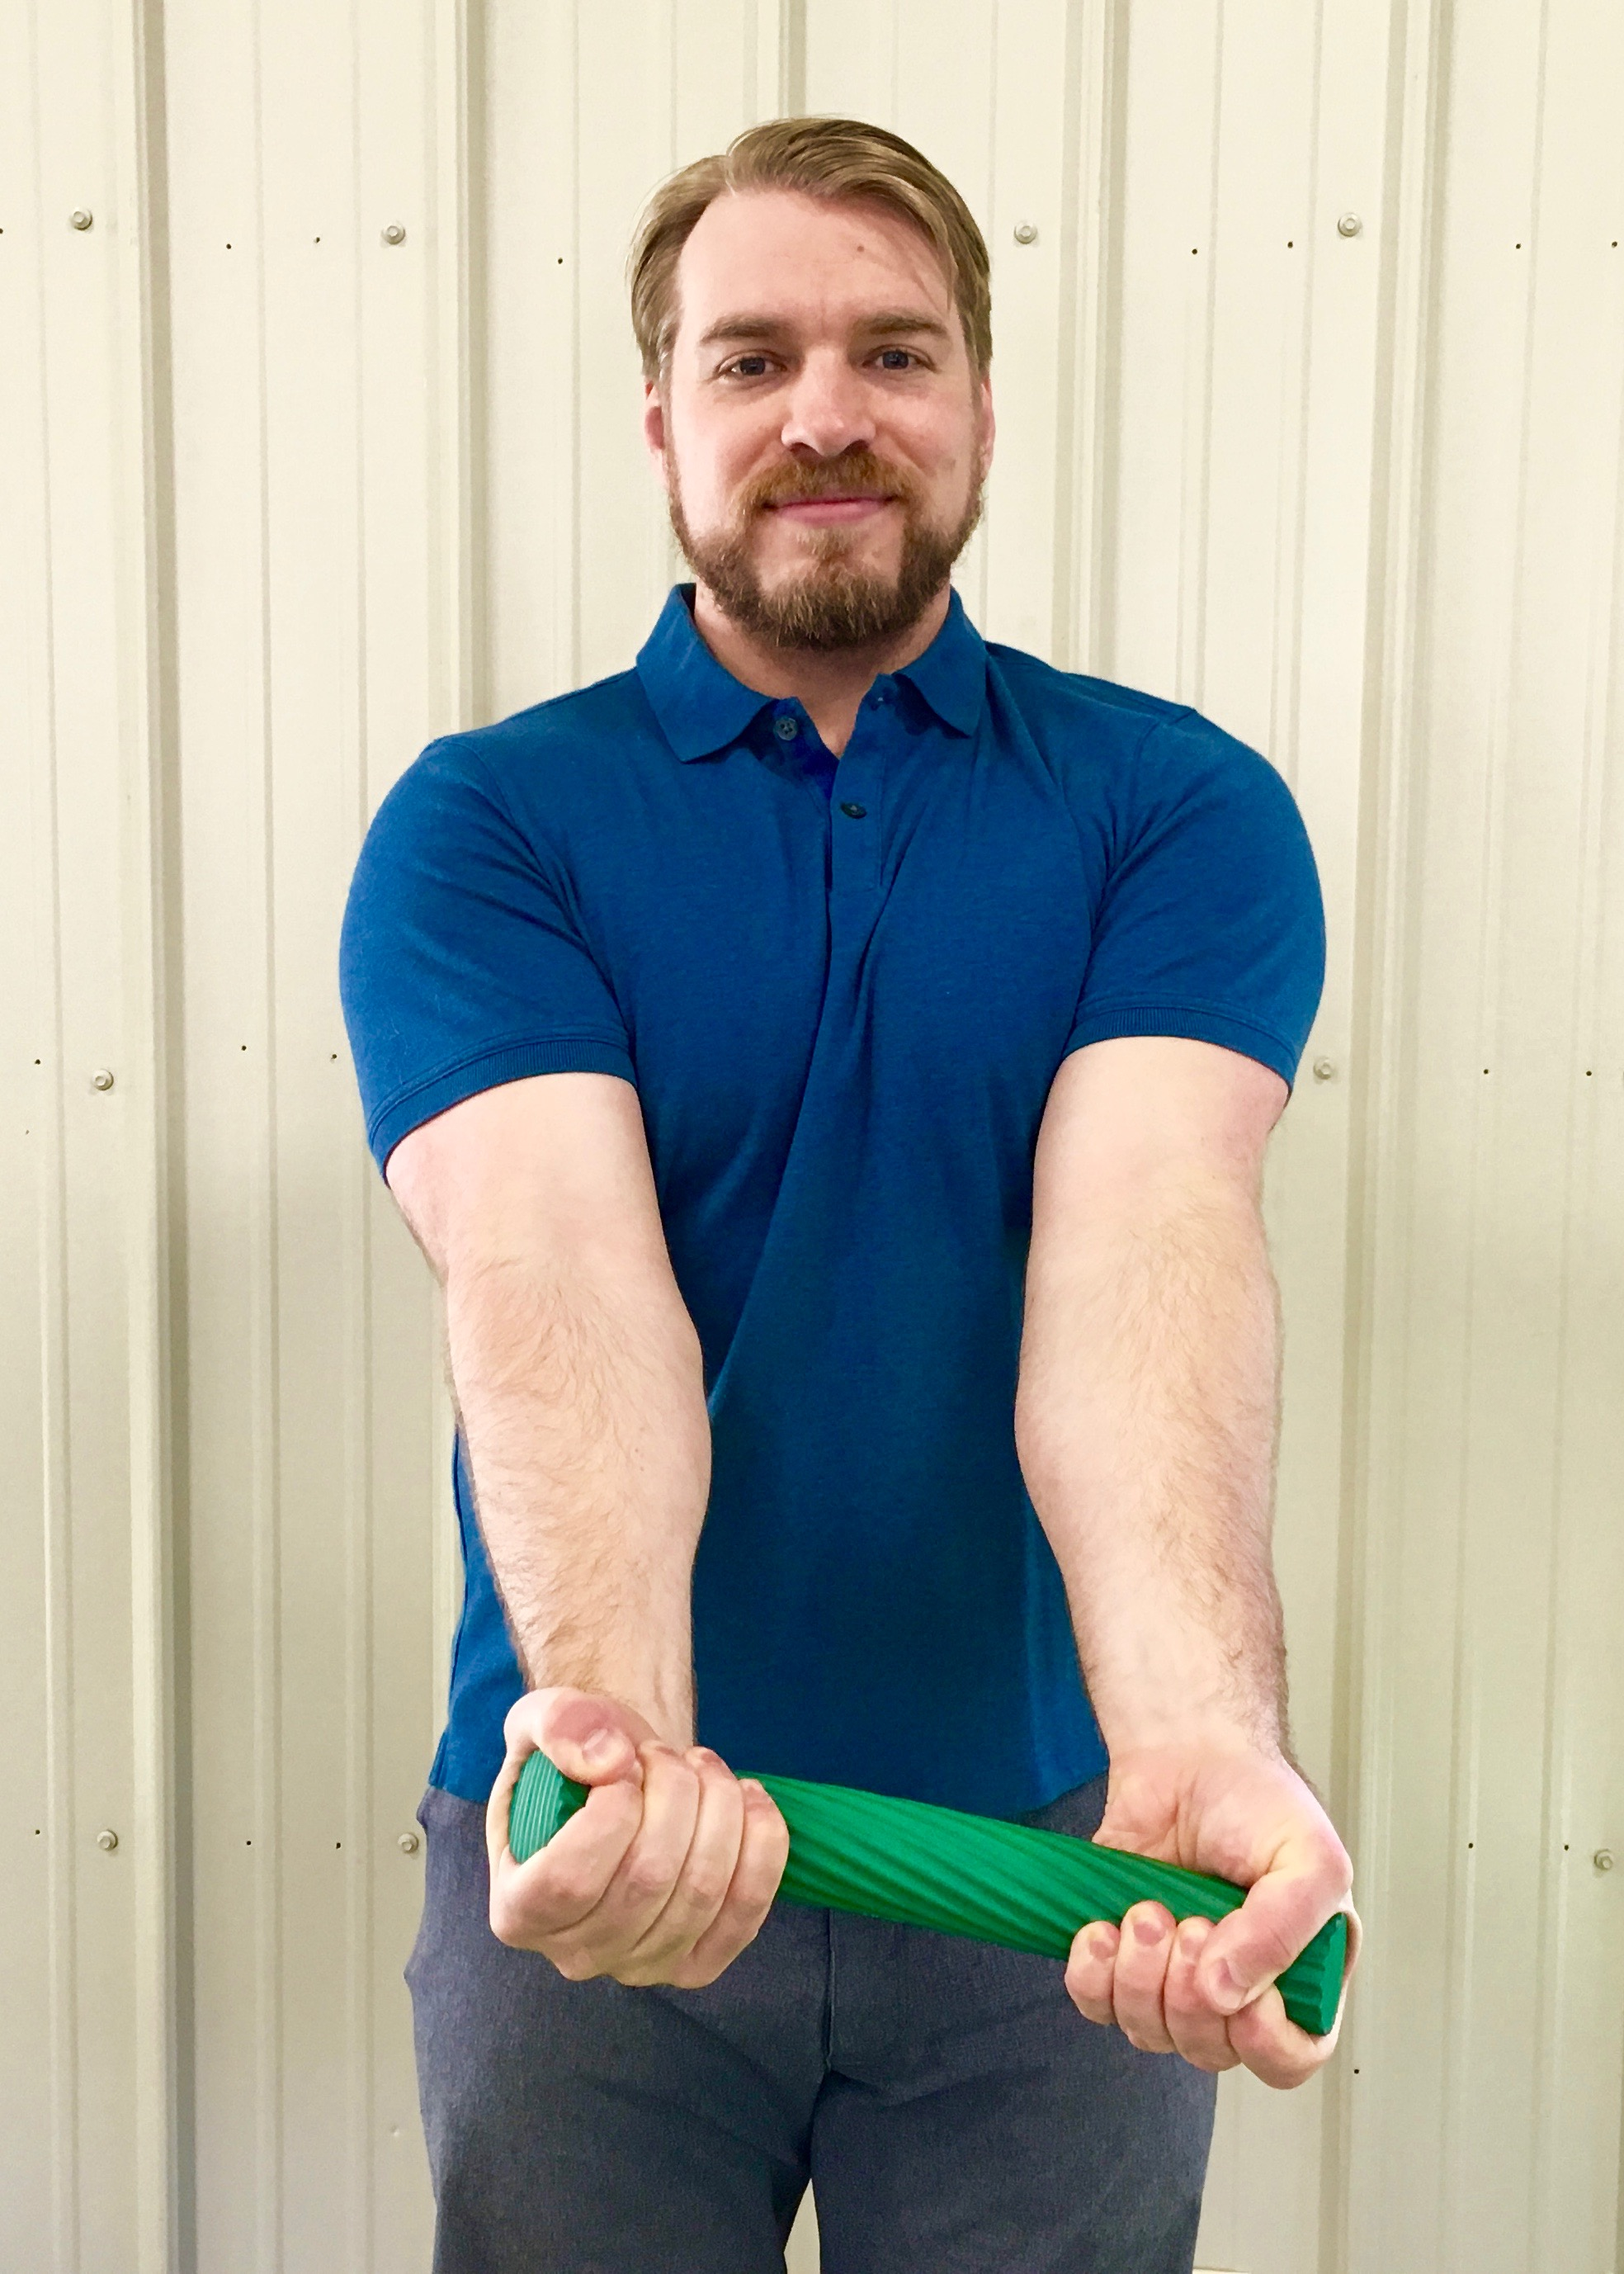 Golfer's Elbow 4 - Straighten both arms while flexing the wrist of the inured arm.